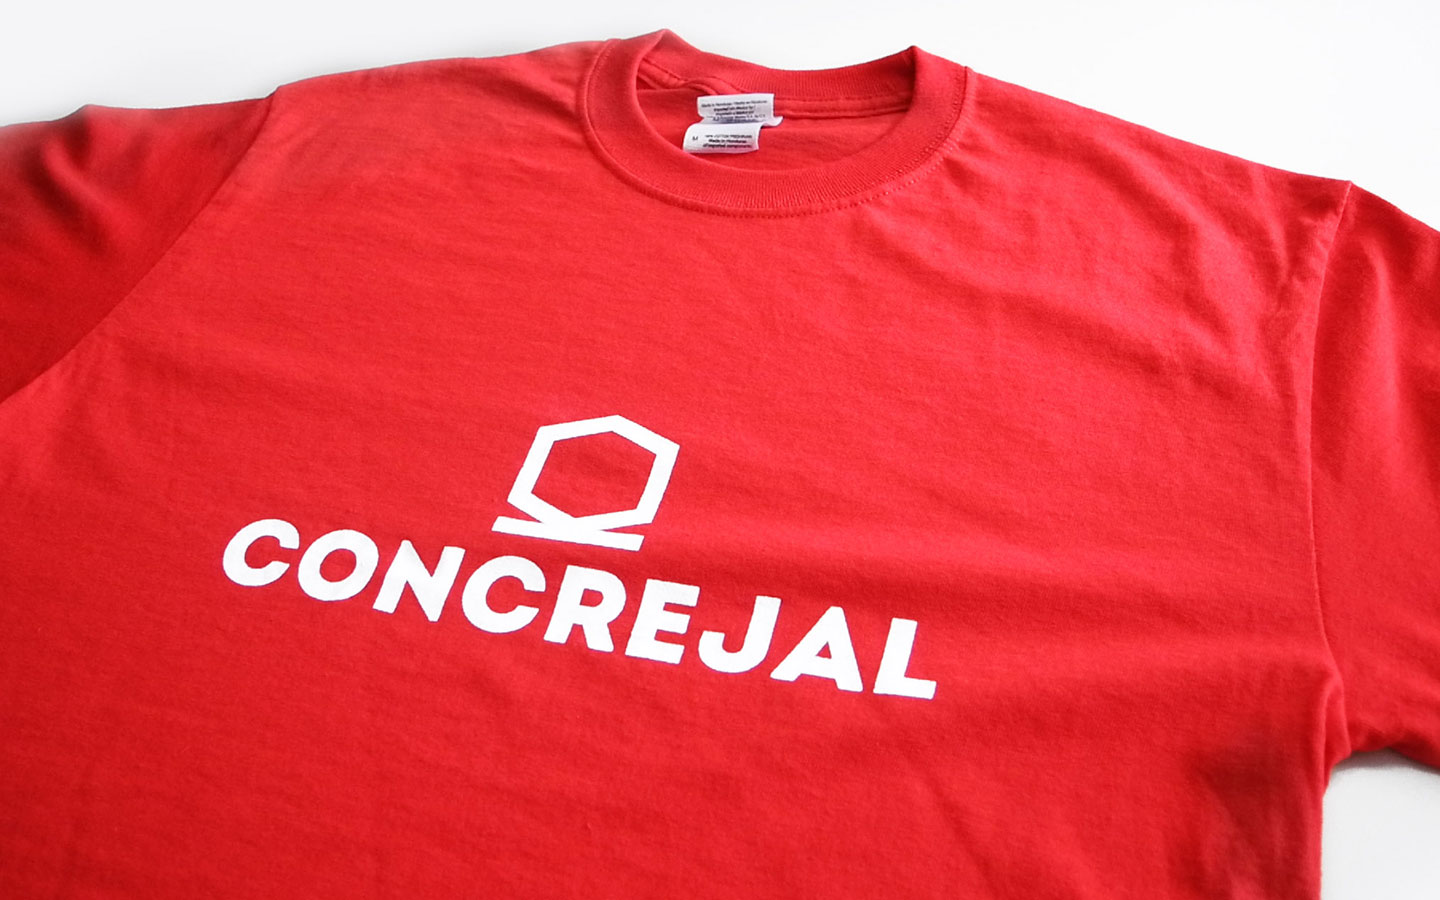 Concrejal-playera